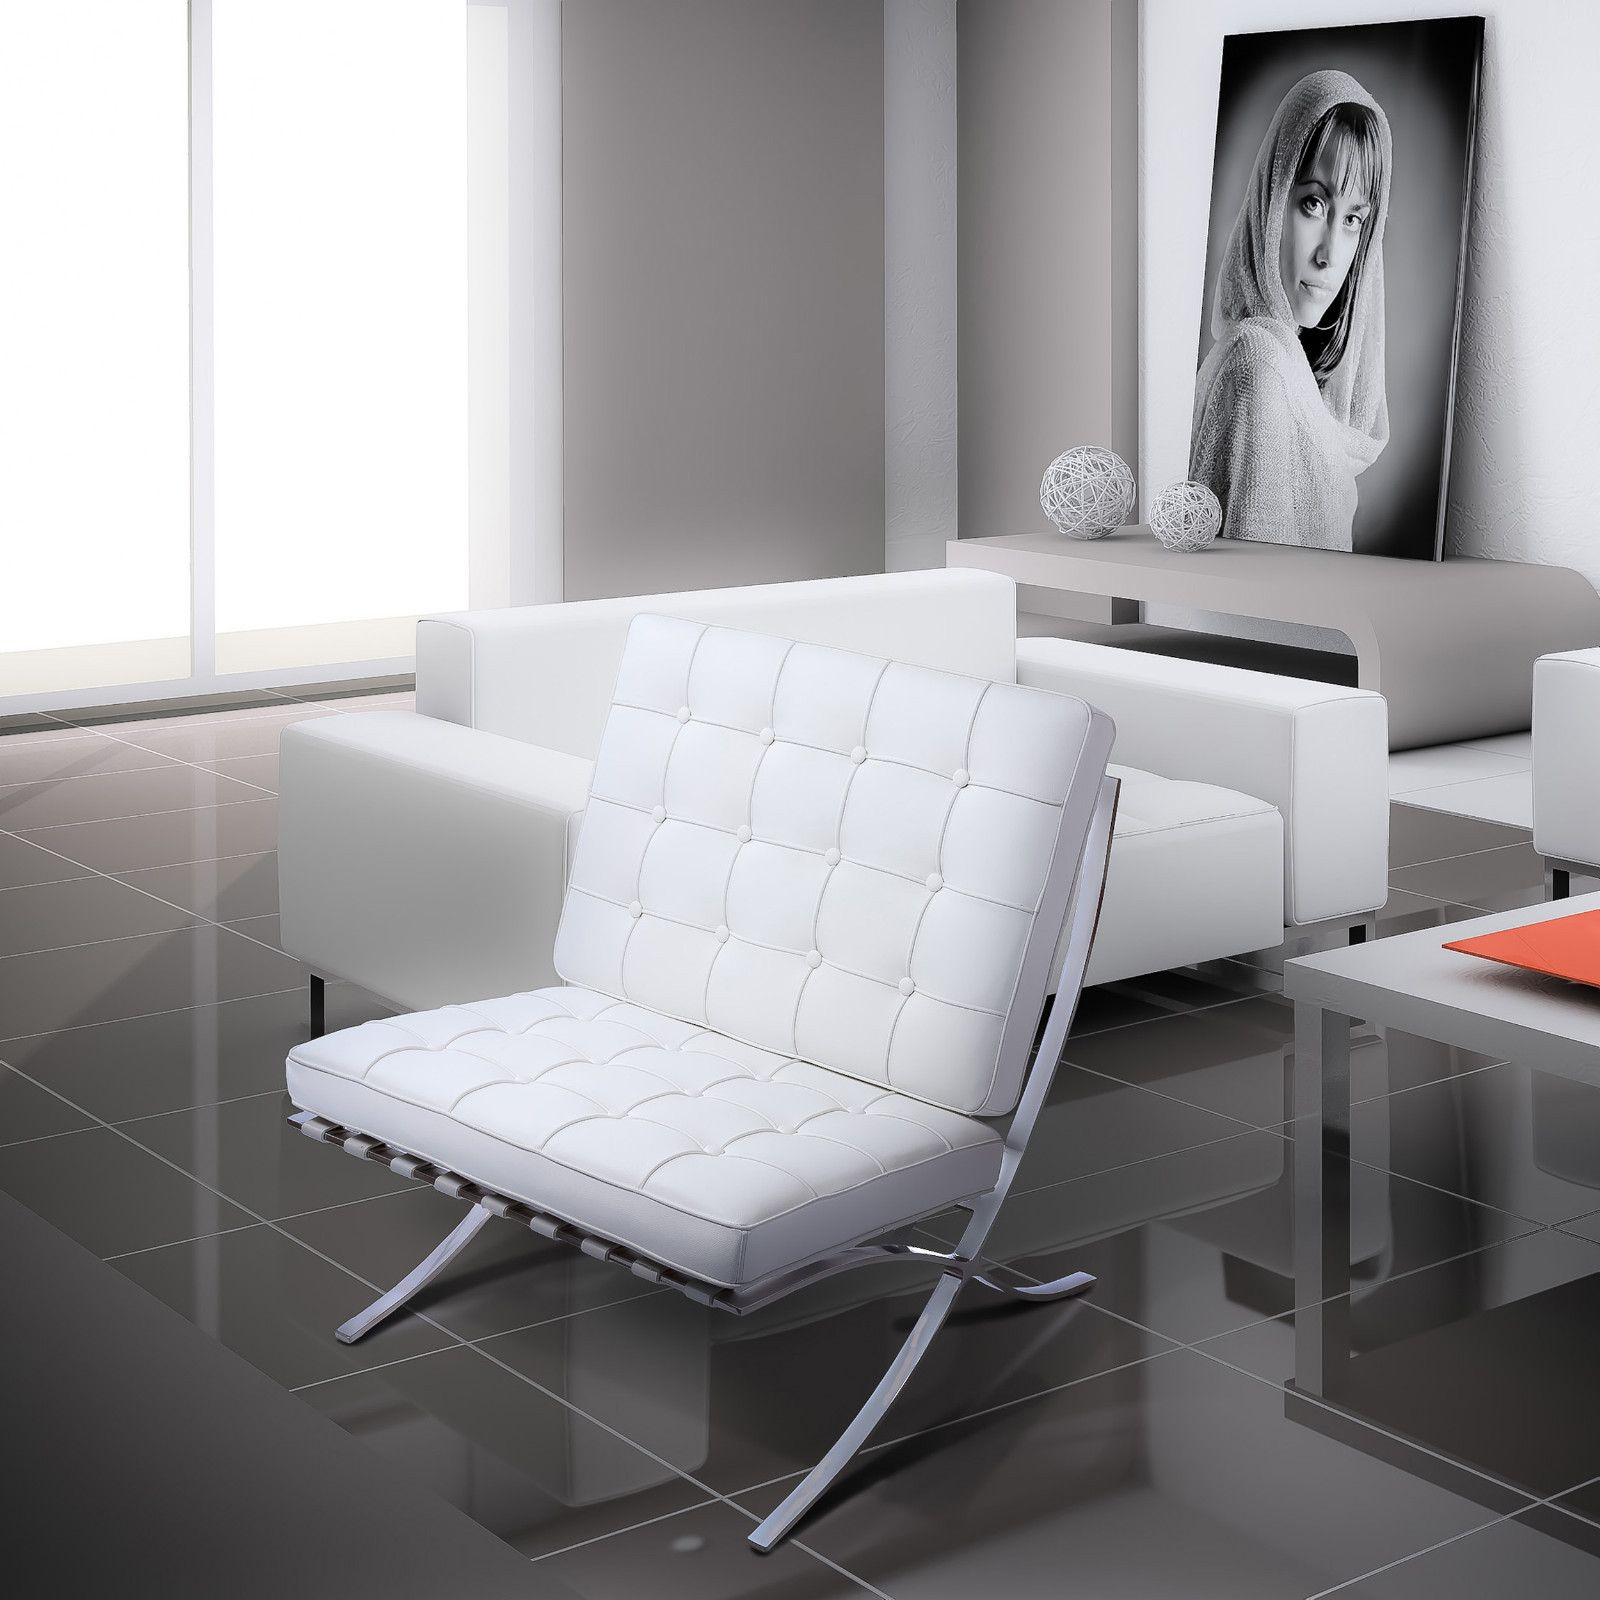 pavilion iconic midcentury modern design lounge chair in white